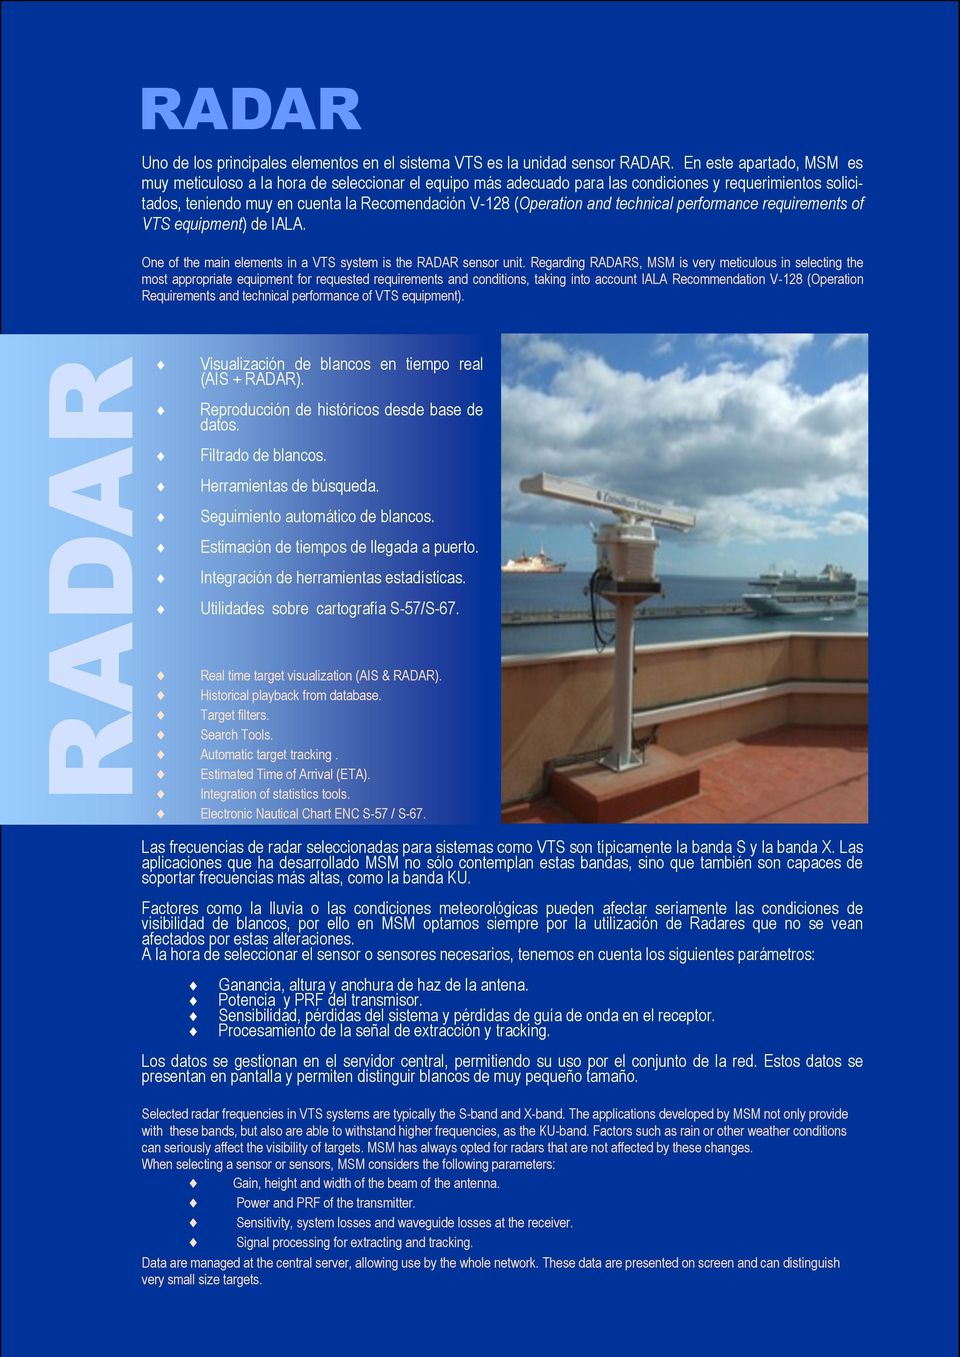 technical performance requirements of VTS equipment) de IALA. One of the main elements in a VTS system is the RADAR sensor unit.